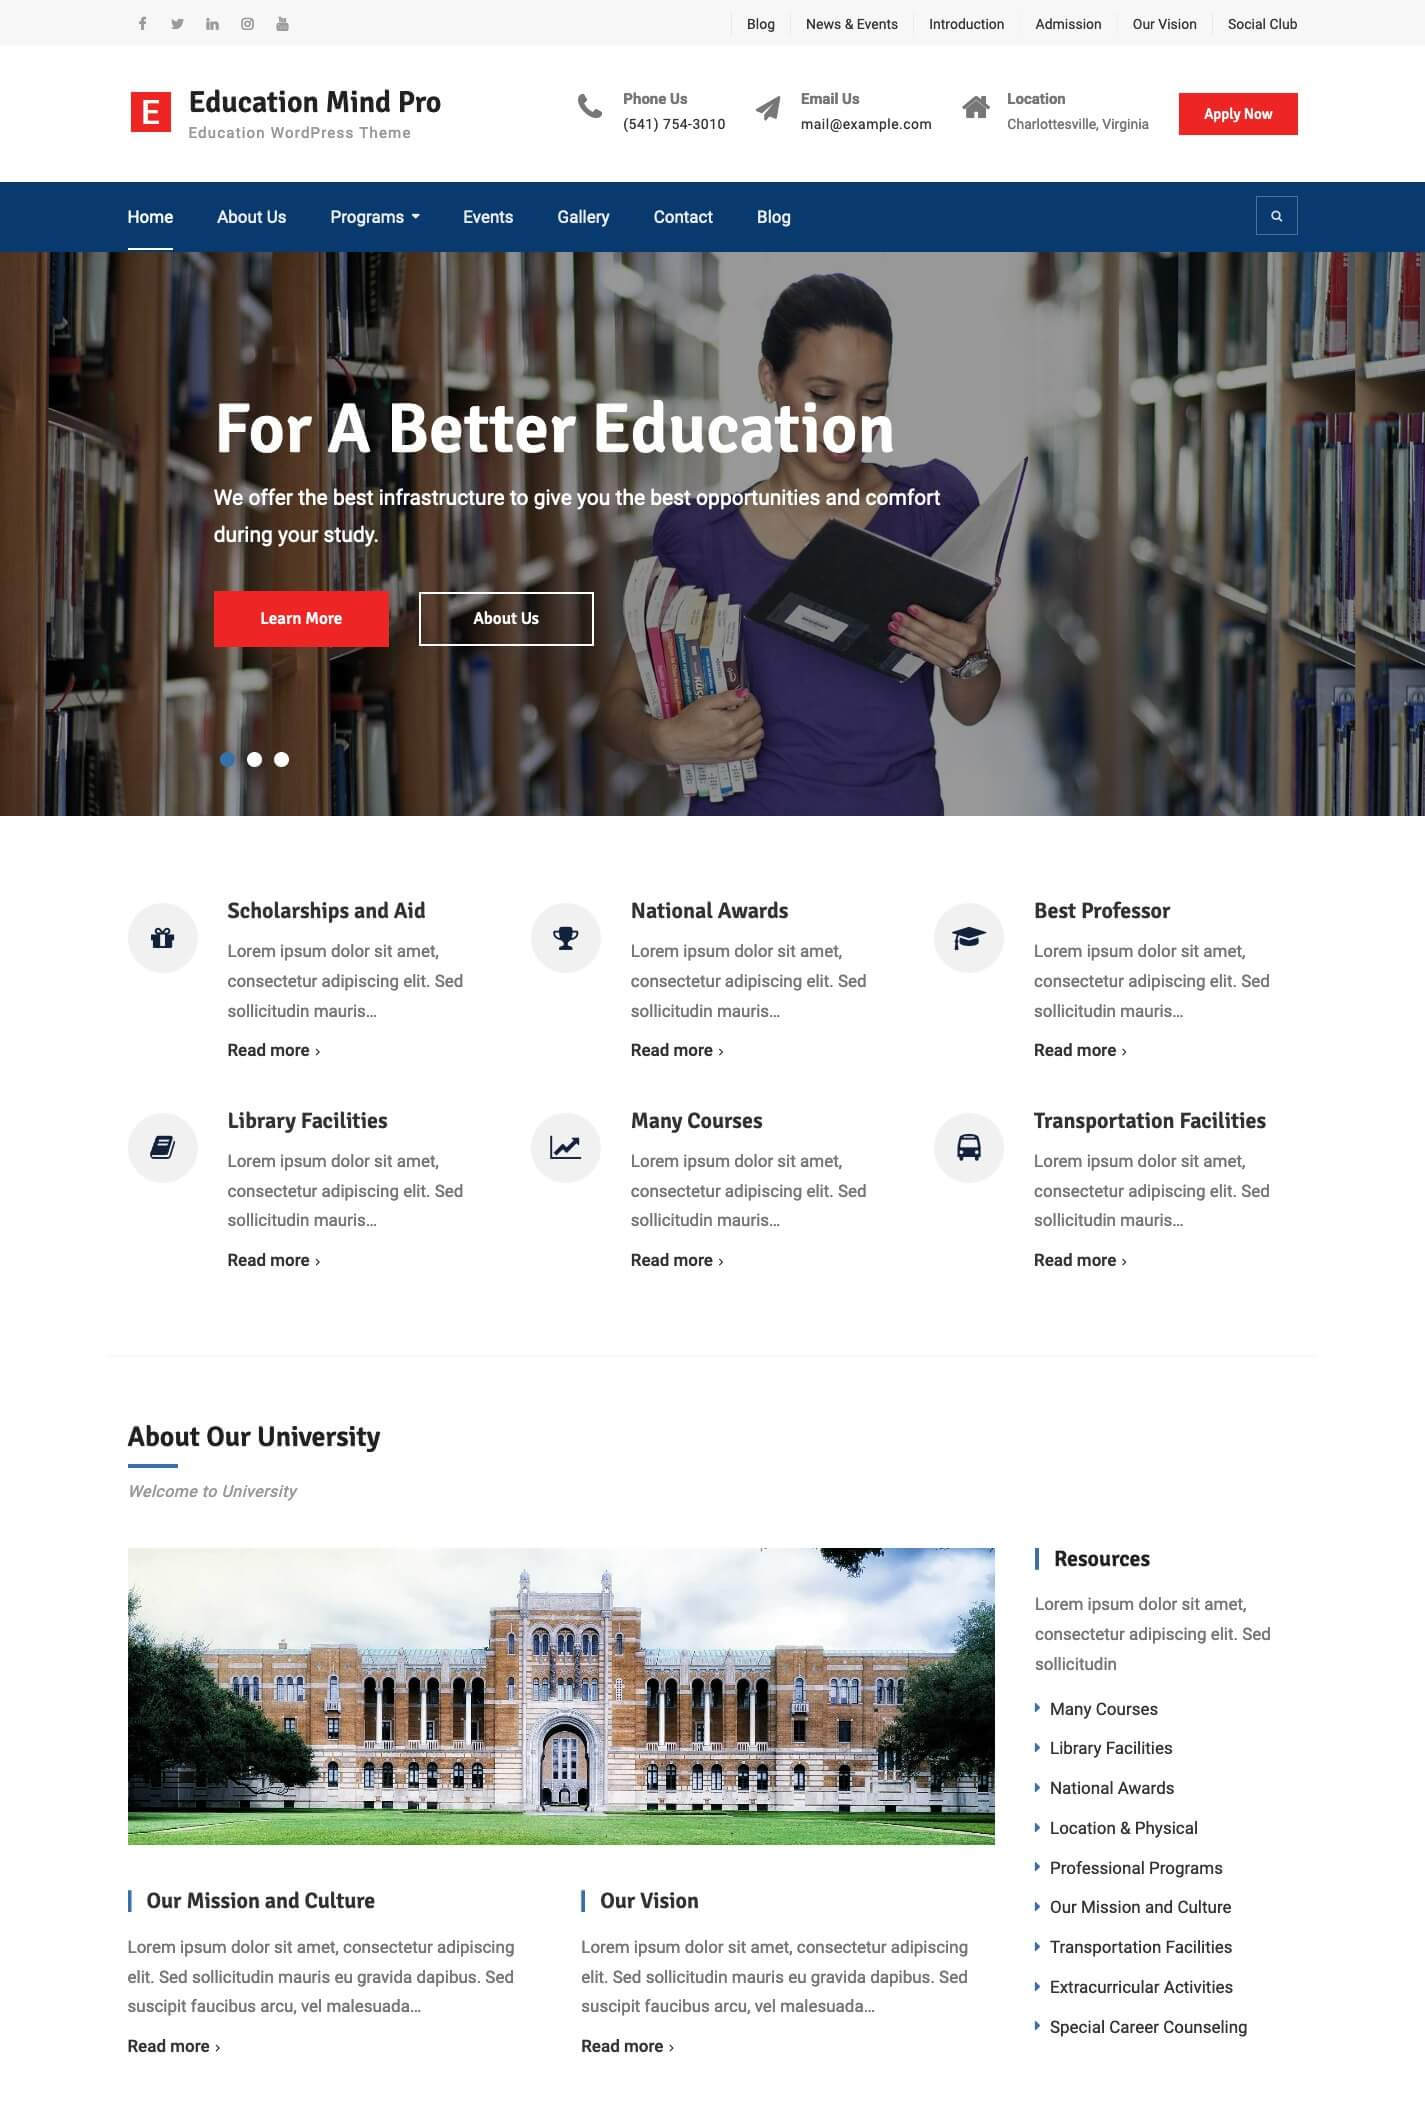 Education Mind Pro